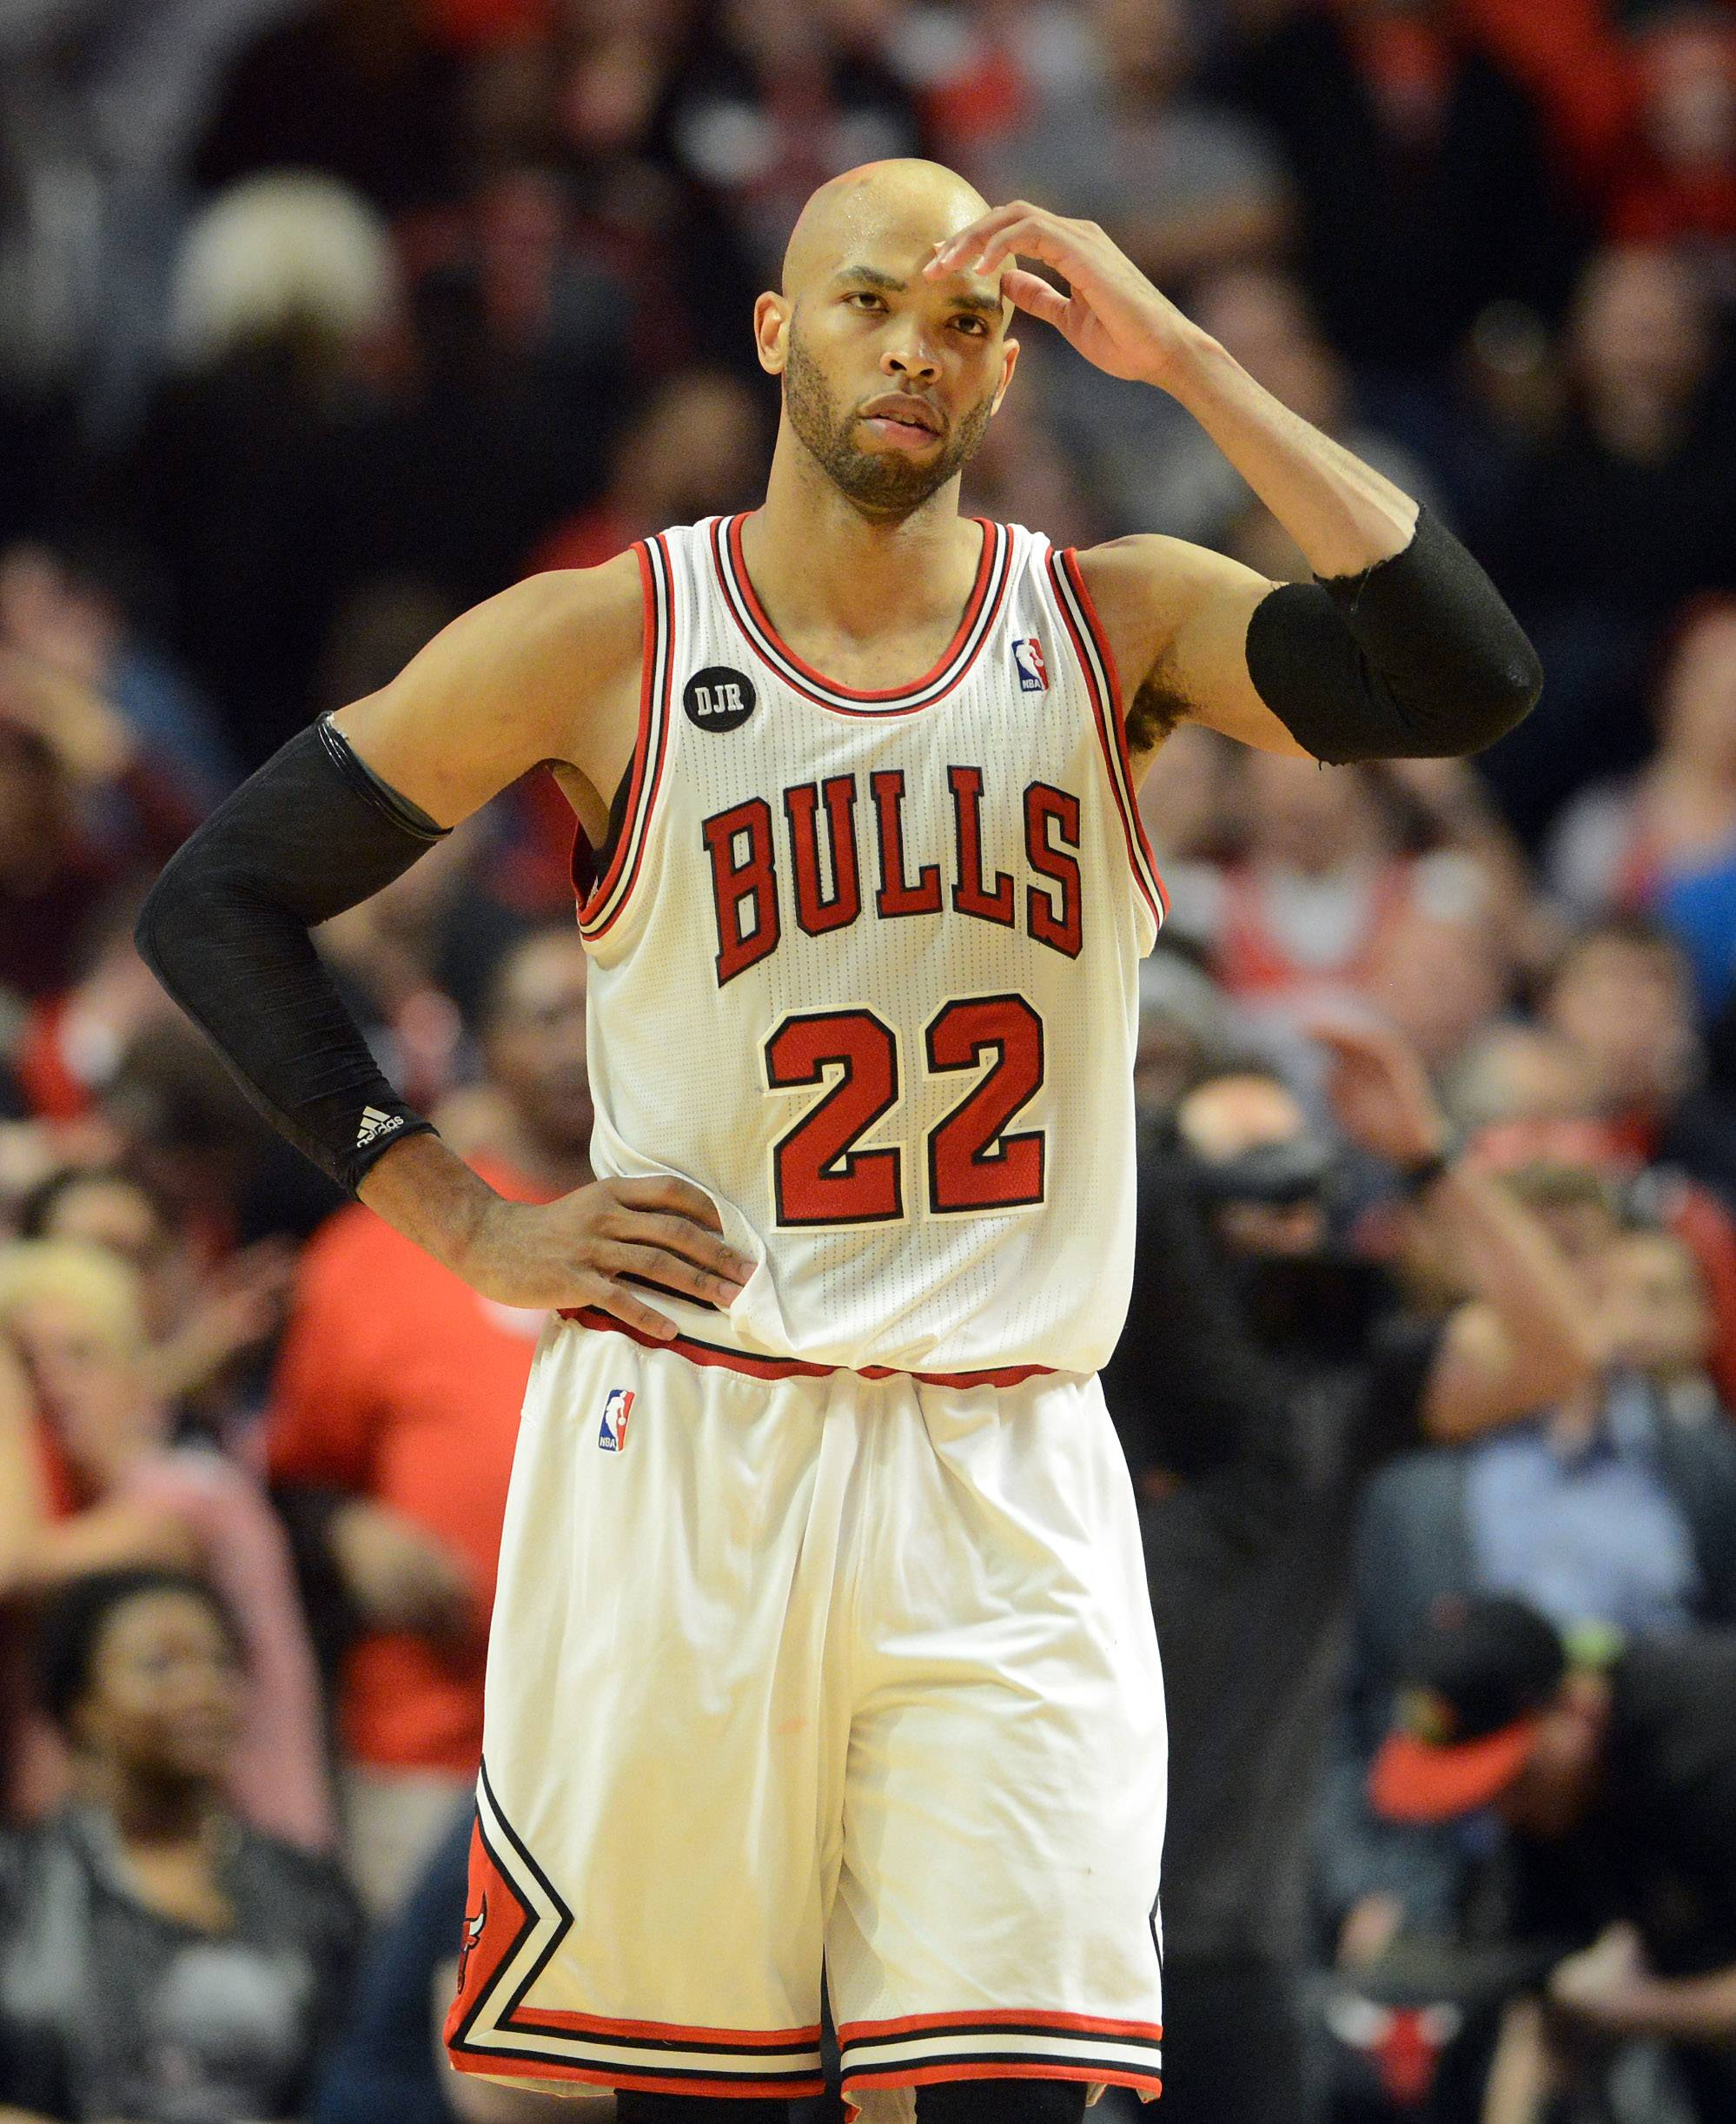 Chicago Bulls forward Taj Gibson (22) walks off the court following Tuesday's loss.